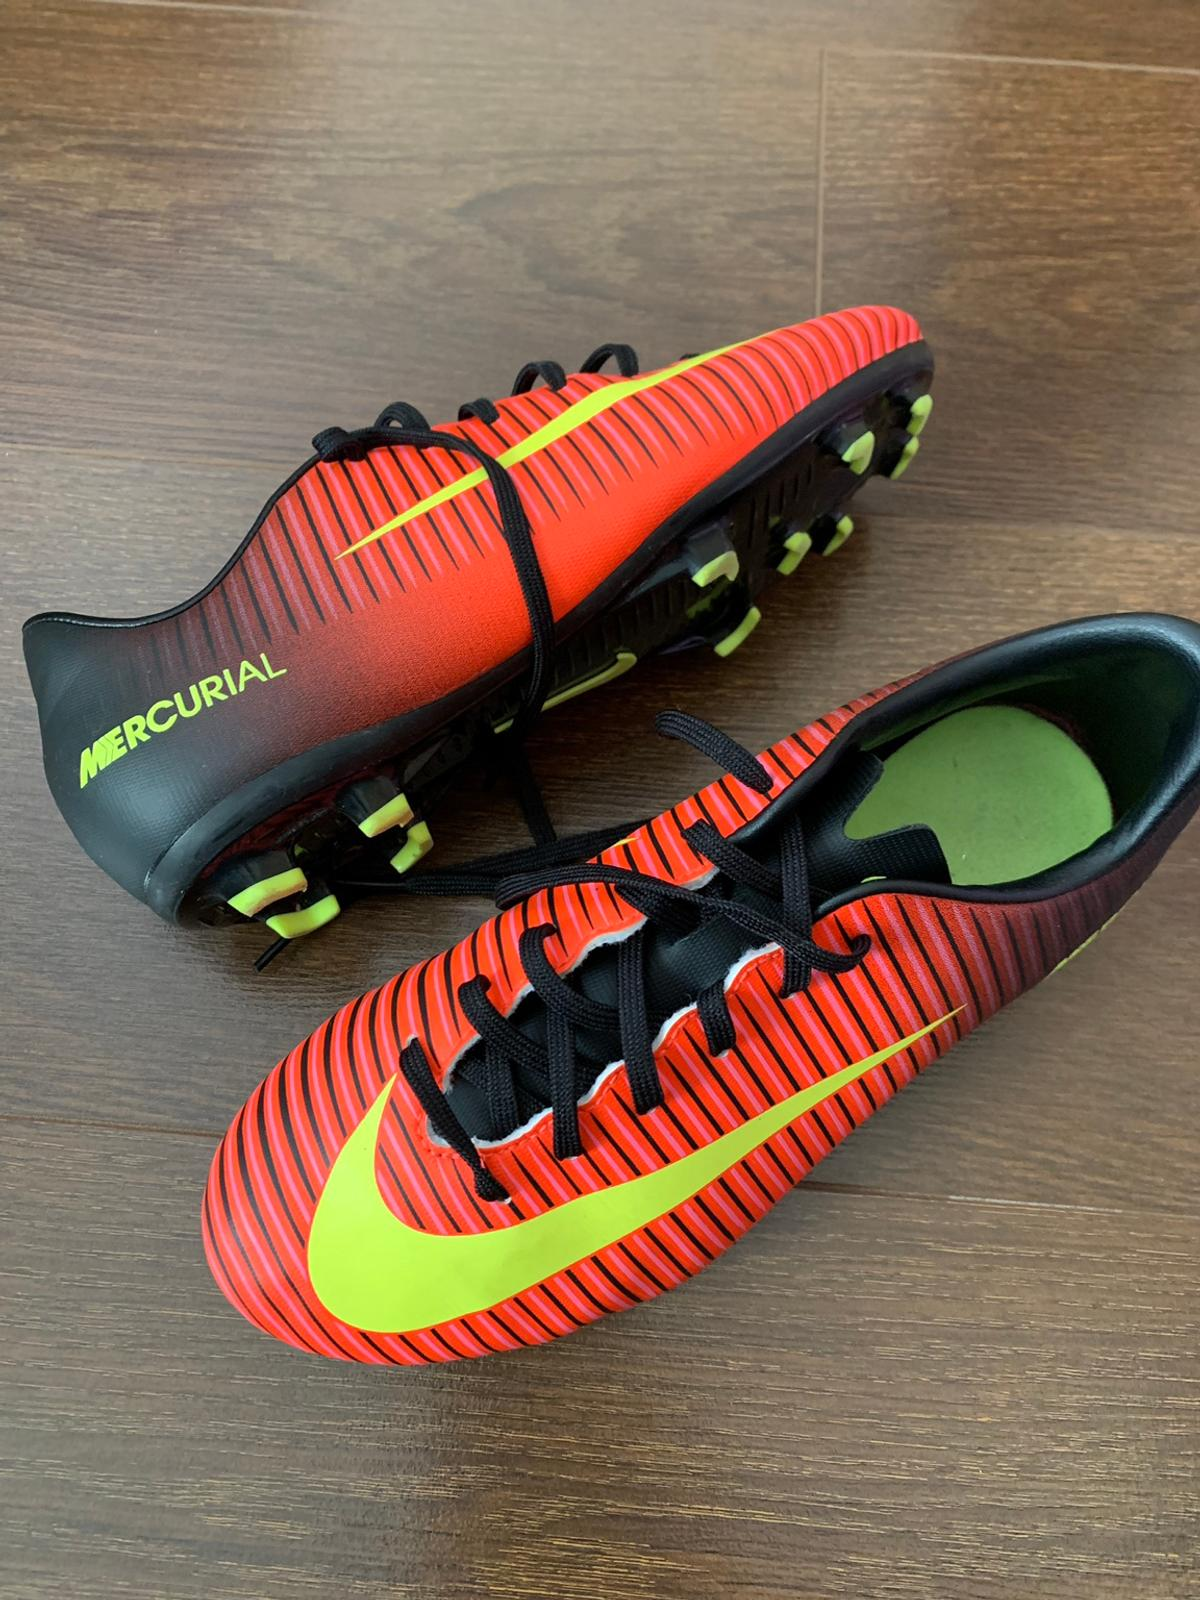 factory authentic b77ea 10cf8 Nike Mercurial Football boots. in B21 Birmingham for £5.00 for sale ...